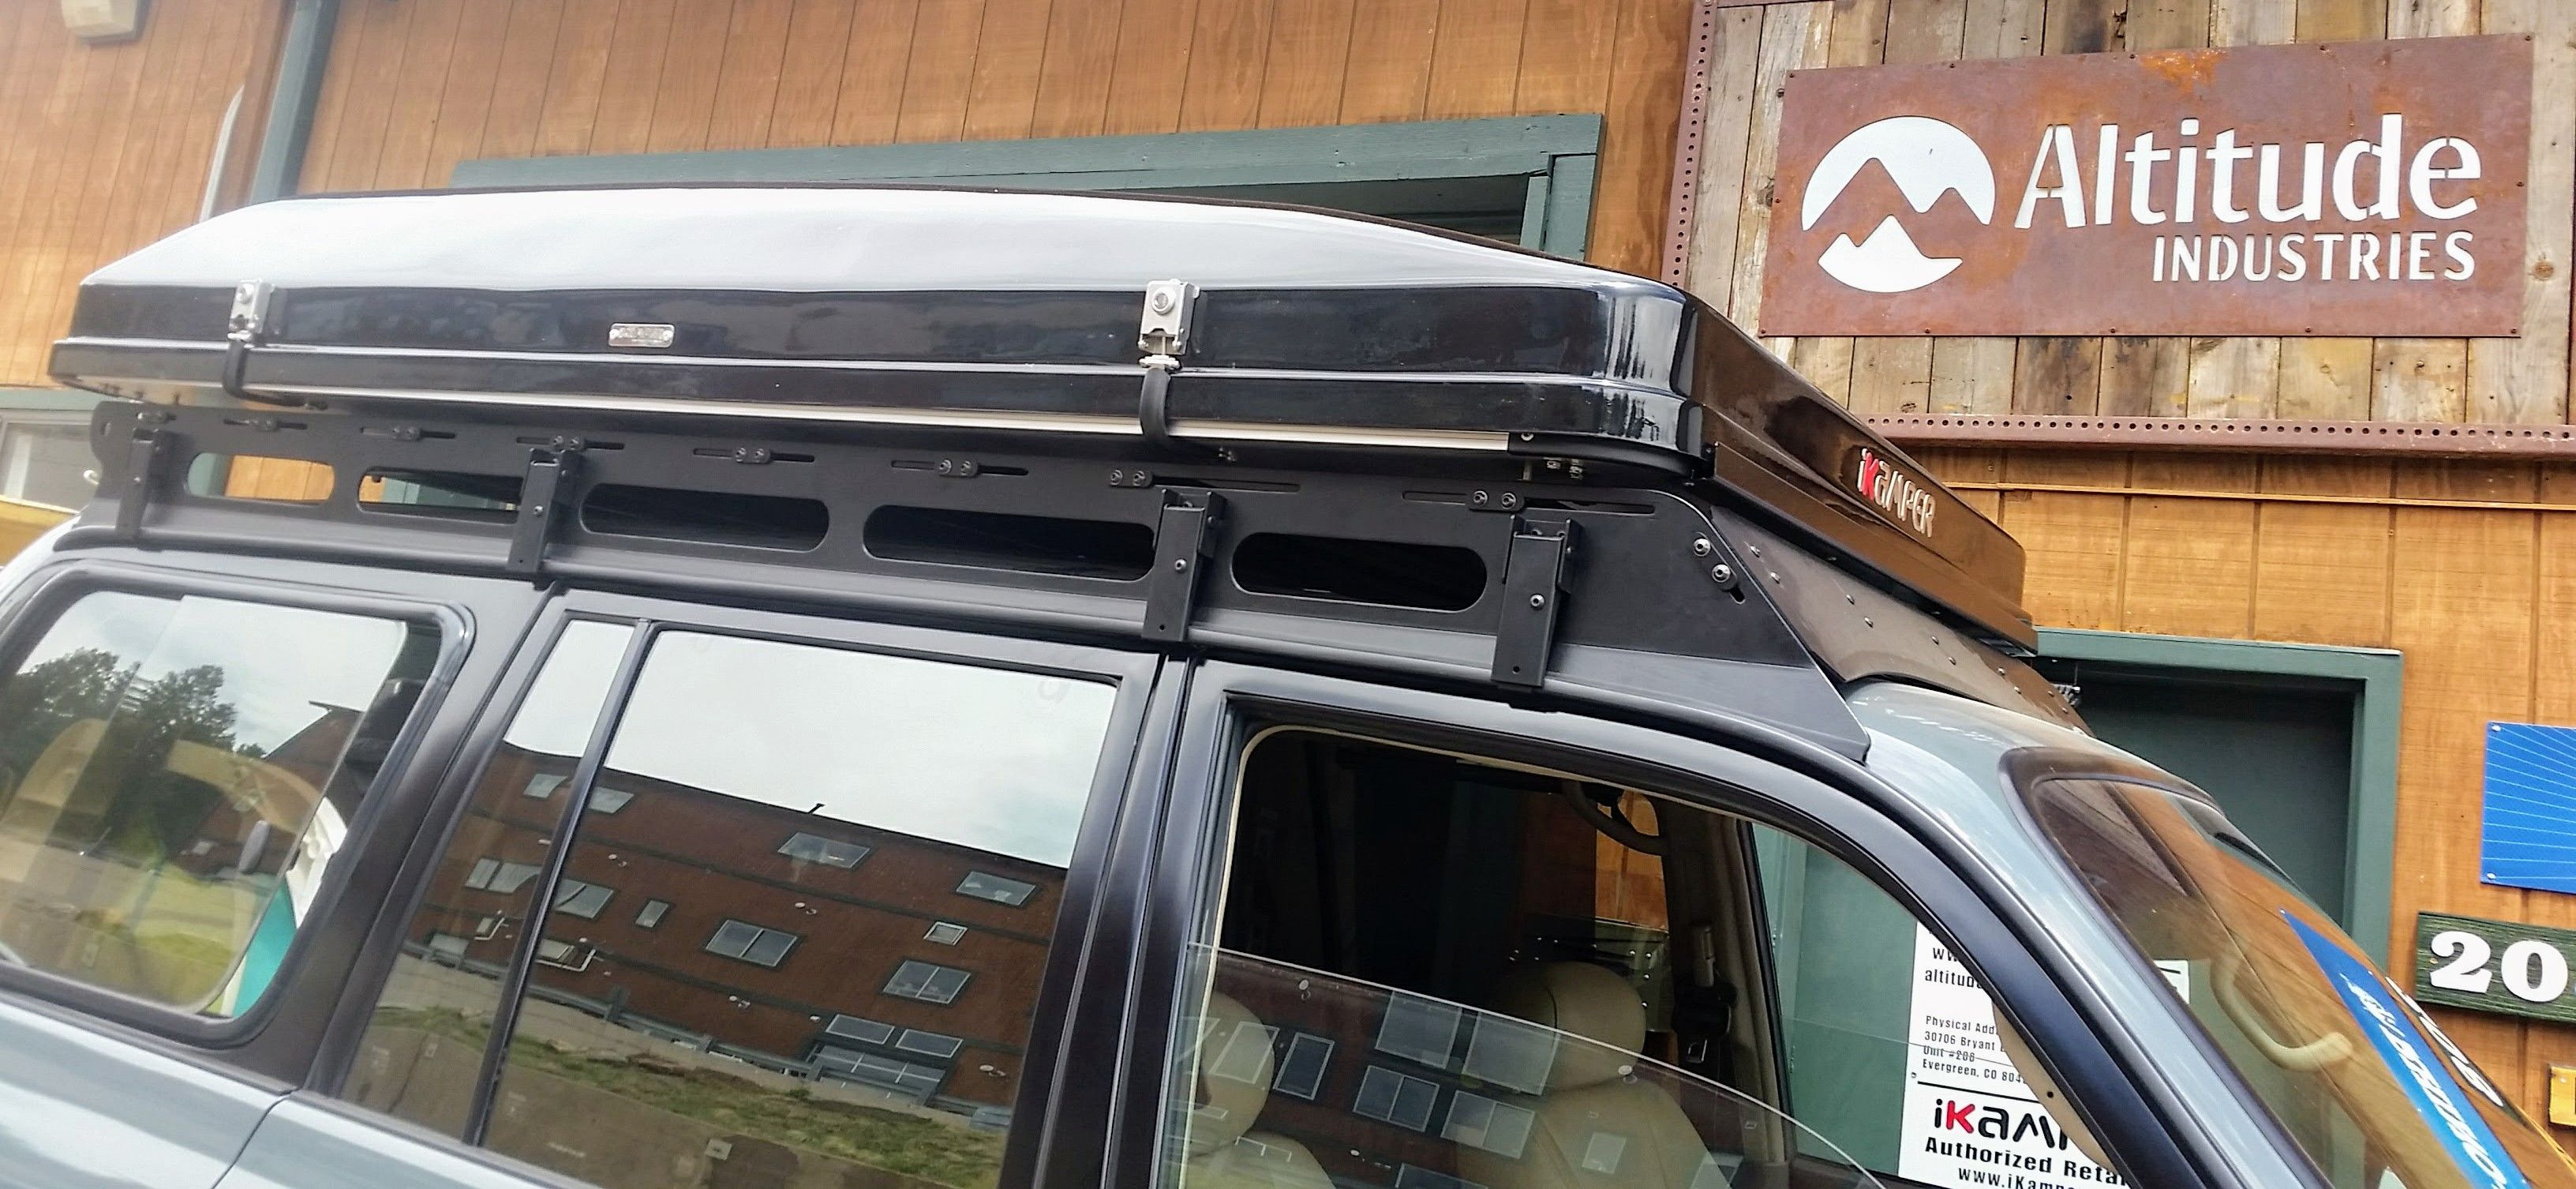 80 S Series Toyota Land Cruiser Bowfin Roof Rack And Ikamper Skycamp They Fit Like A Glove Toyota Land Cruiser Roof Rack Land Cruiser